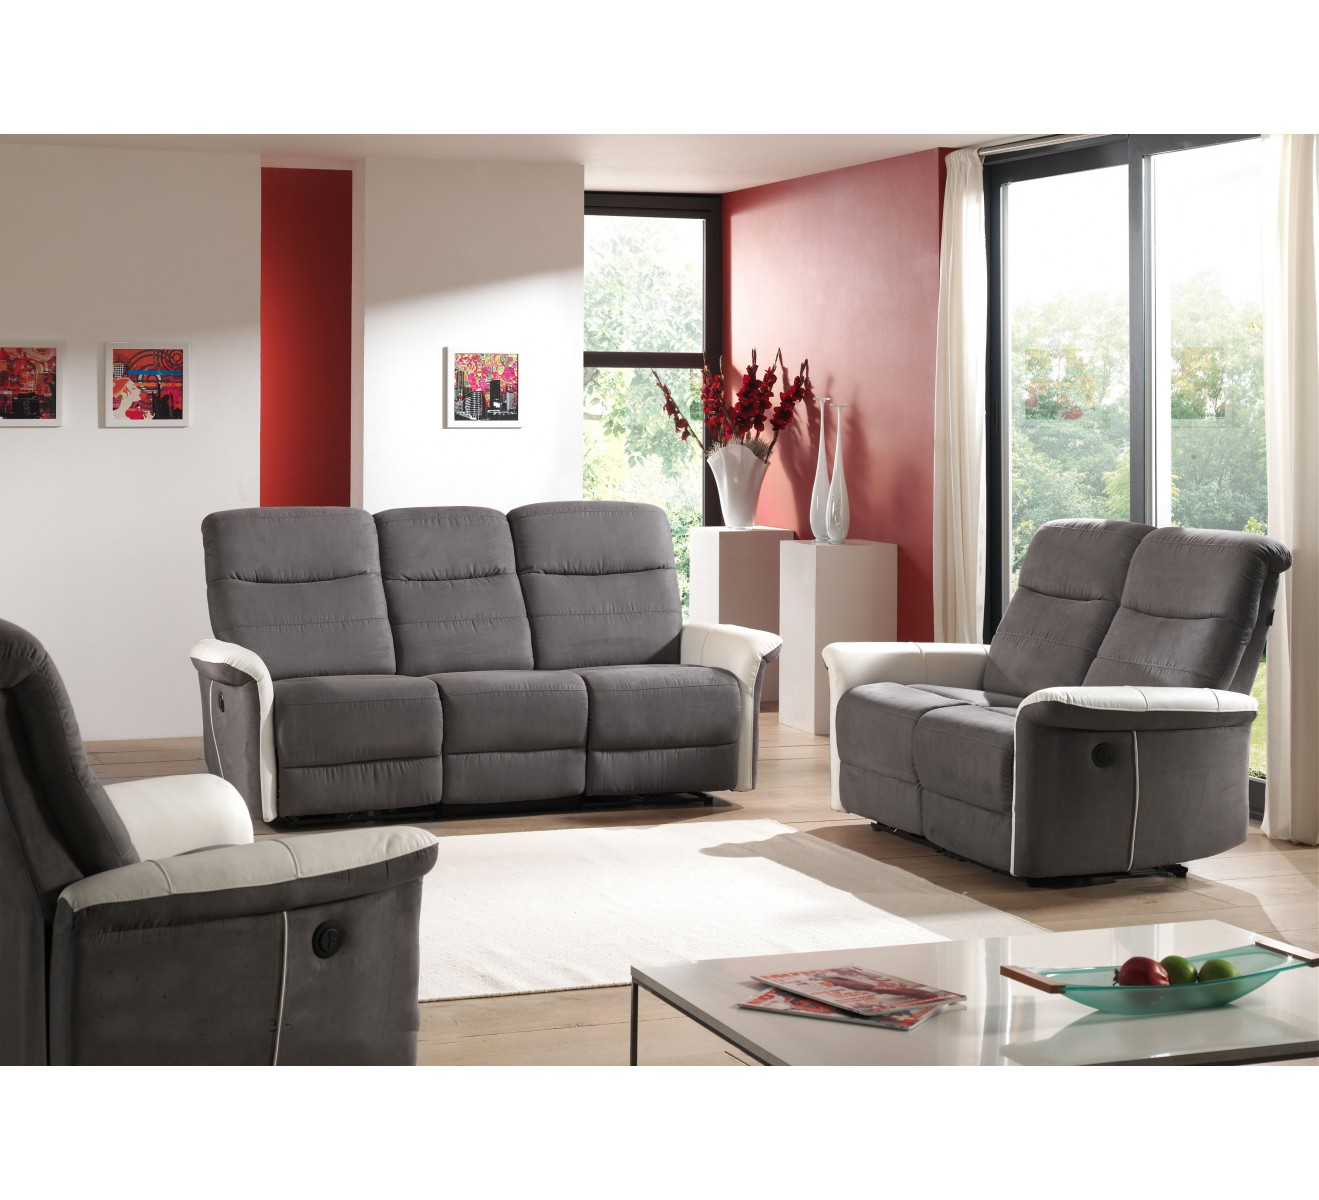 salon complet relax lectrique canap 2 fauteuils gris. Black Bedroom Furniture Sets. Home Design Ideas